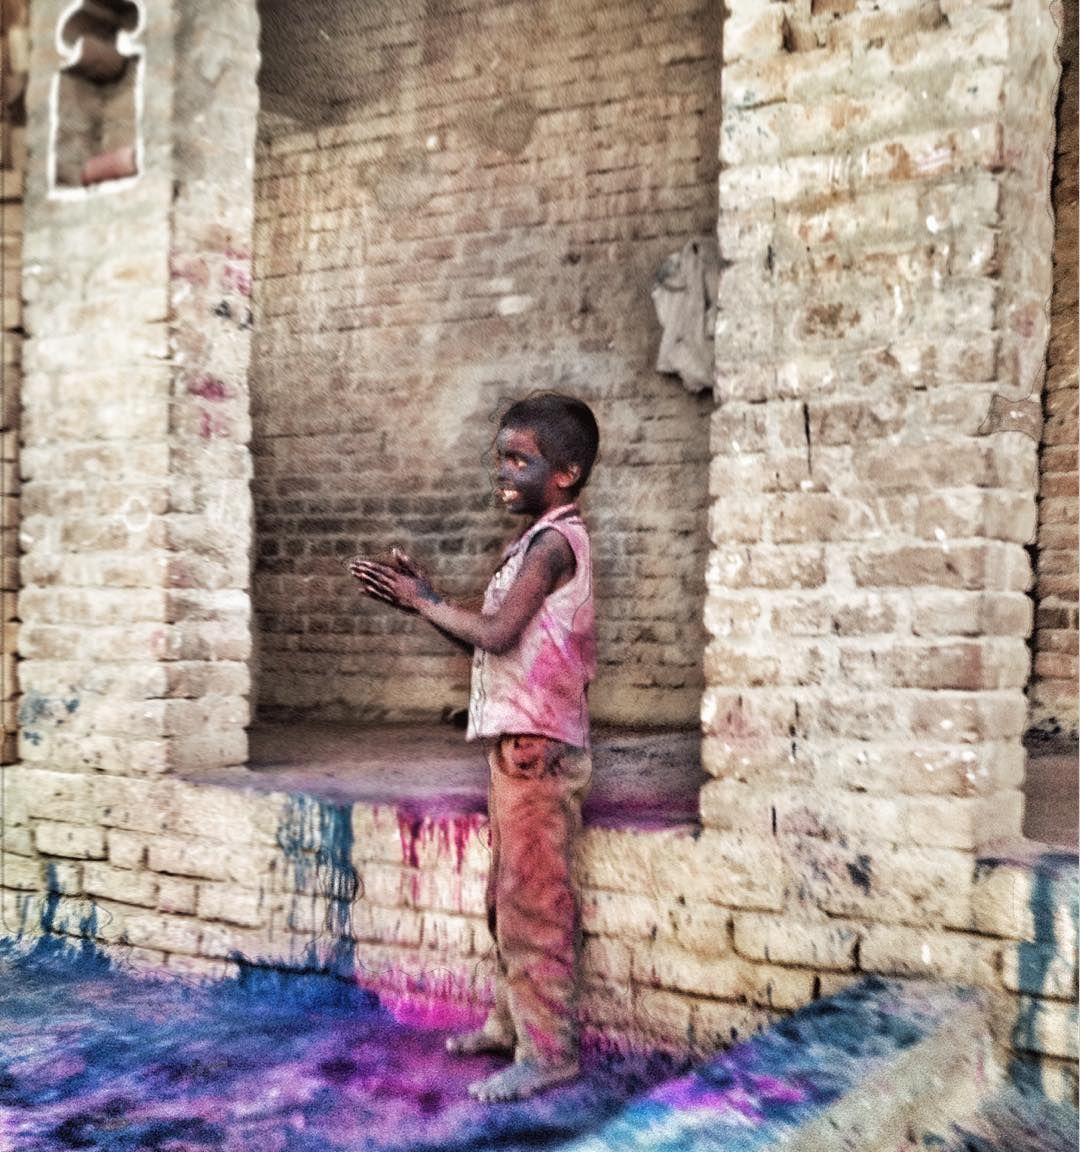 A young boy playing Holi<3 #uttarpradesh #village #holi #festival #india #colours #vibrant #love #fun #happy #boy #smiling #iphonography by itisha_singh